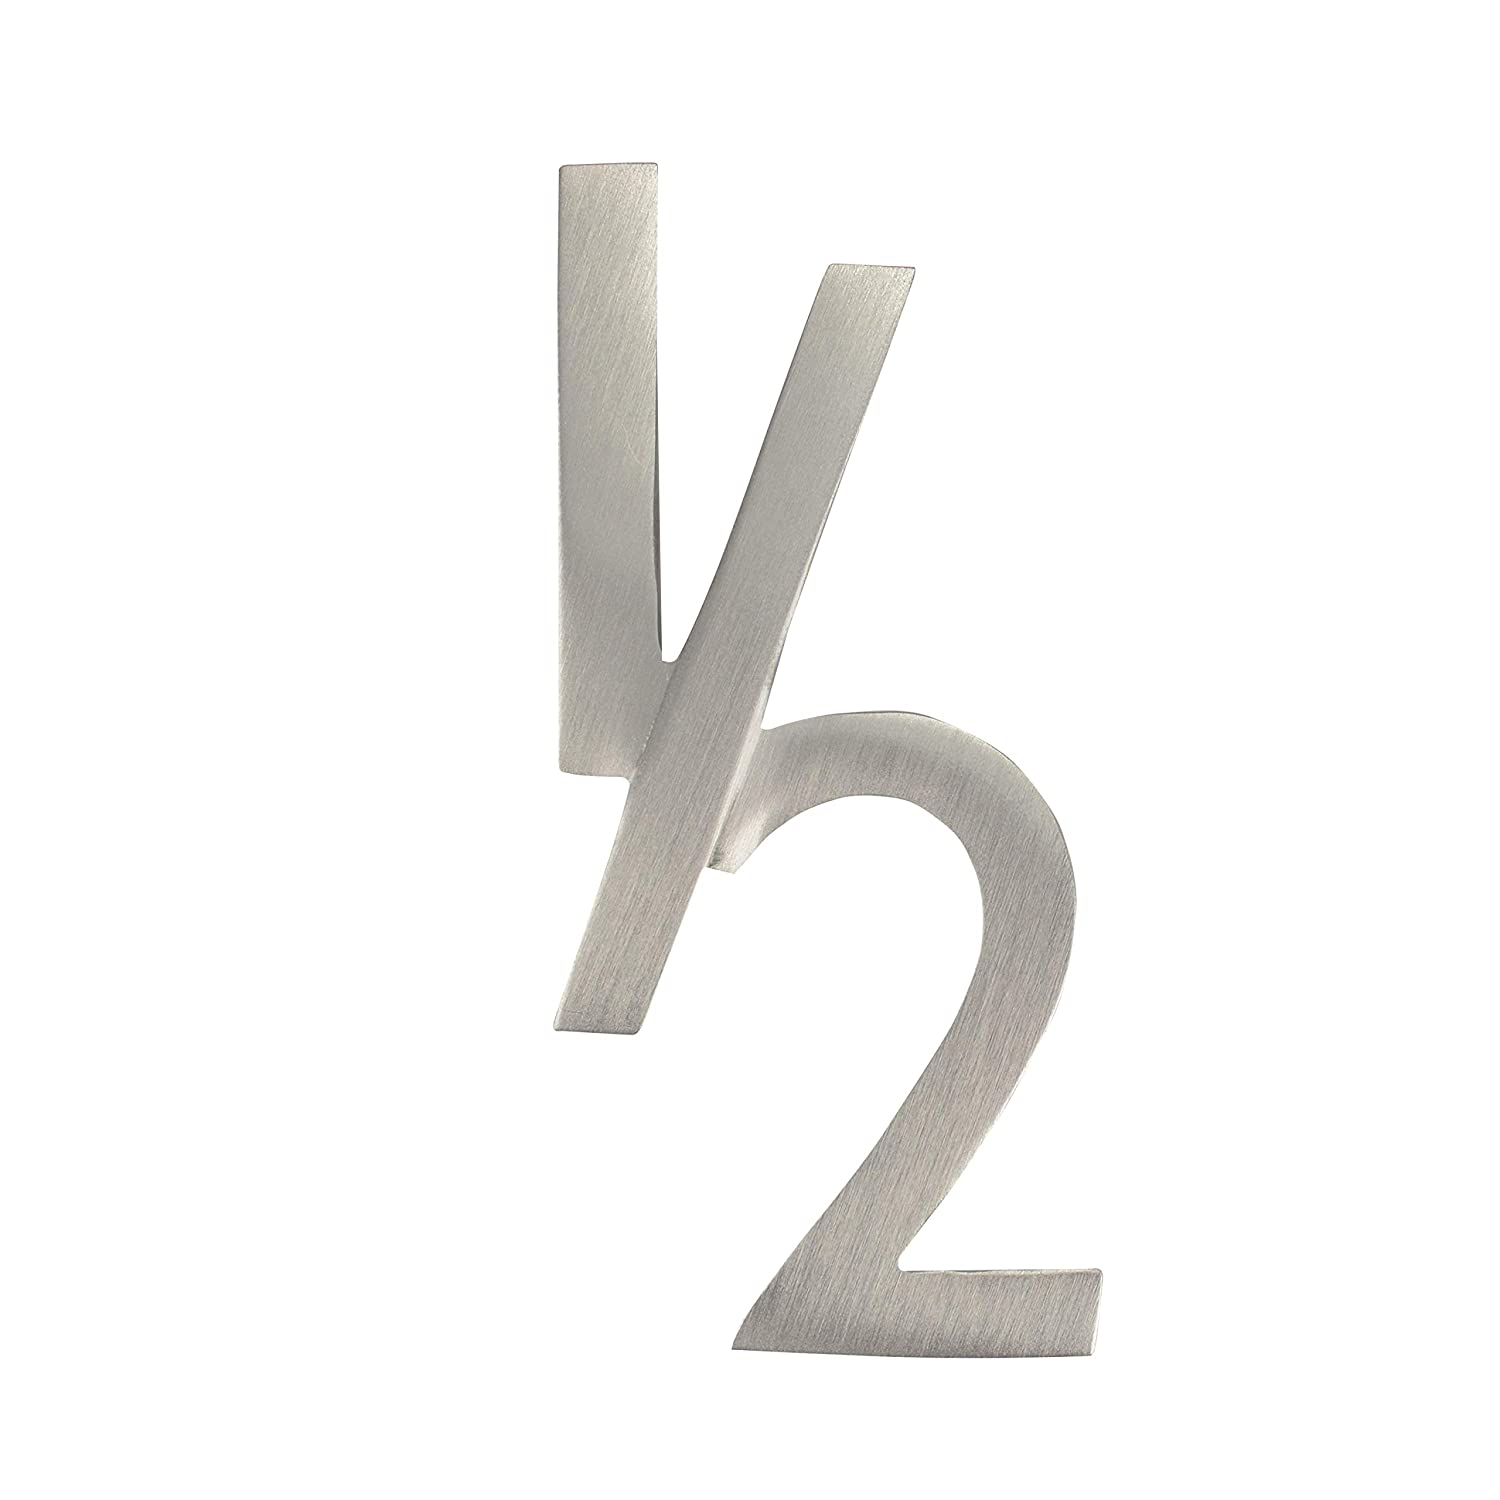 Brass Floating House Number Architectural Mailboxes 3582B-3 4 in